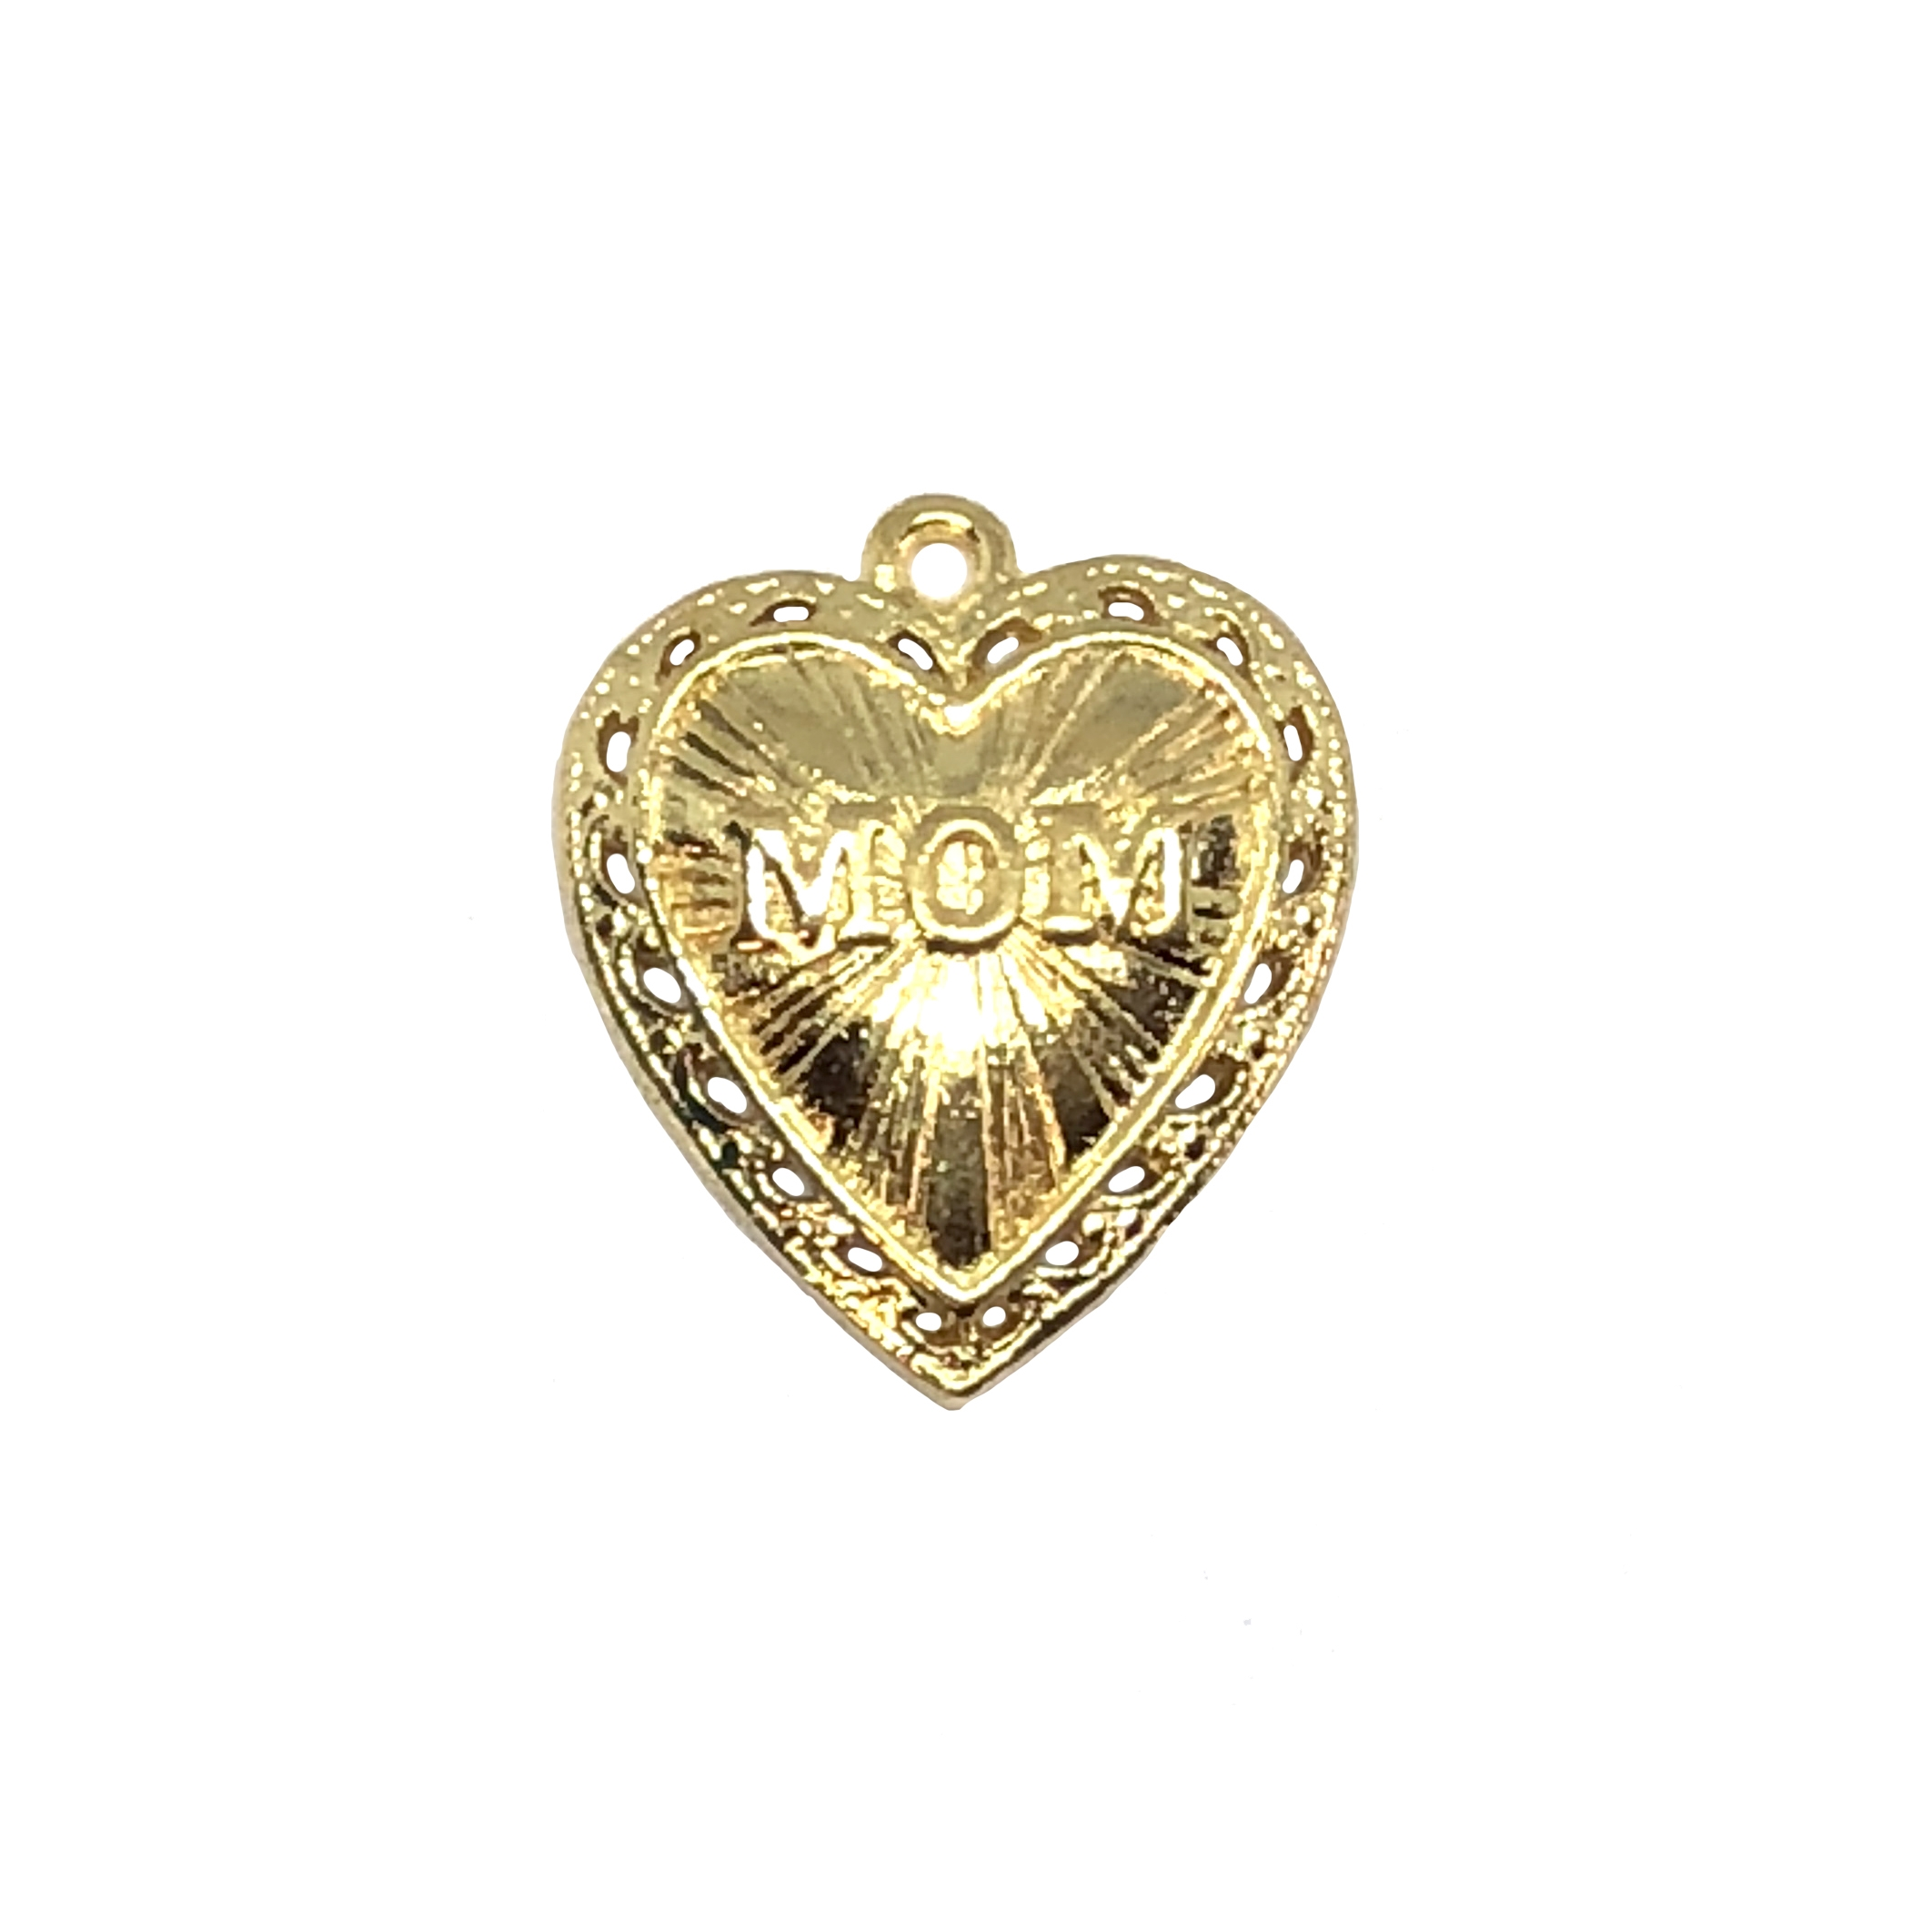 mom heart pendant, 22K gold finish pewter, B'sue by 1928, pendant, heart pendant, charm, mom, mom jewelry, gold, lead free pewter, gold finish, US made, designer jewelry, vintage supplies, B'sue Boutiques, 24x21mm, 08527